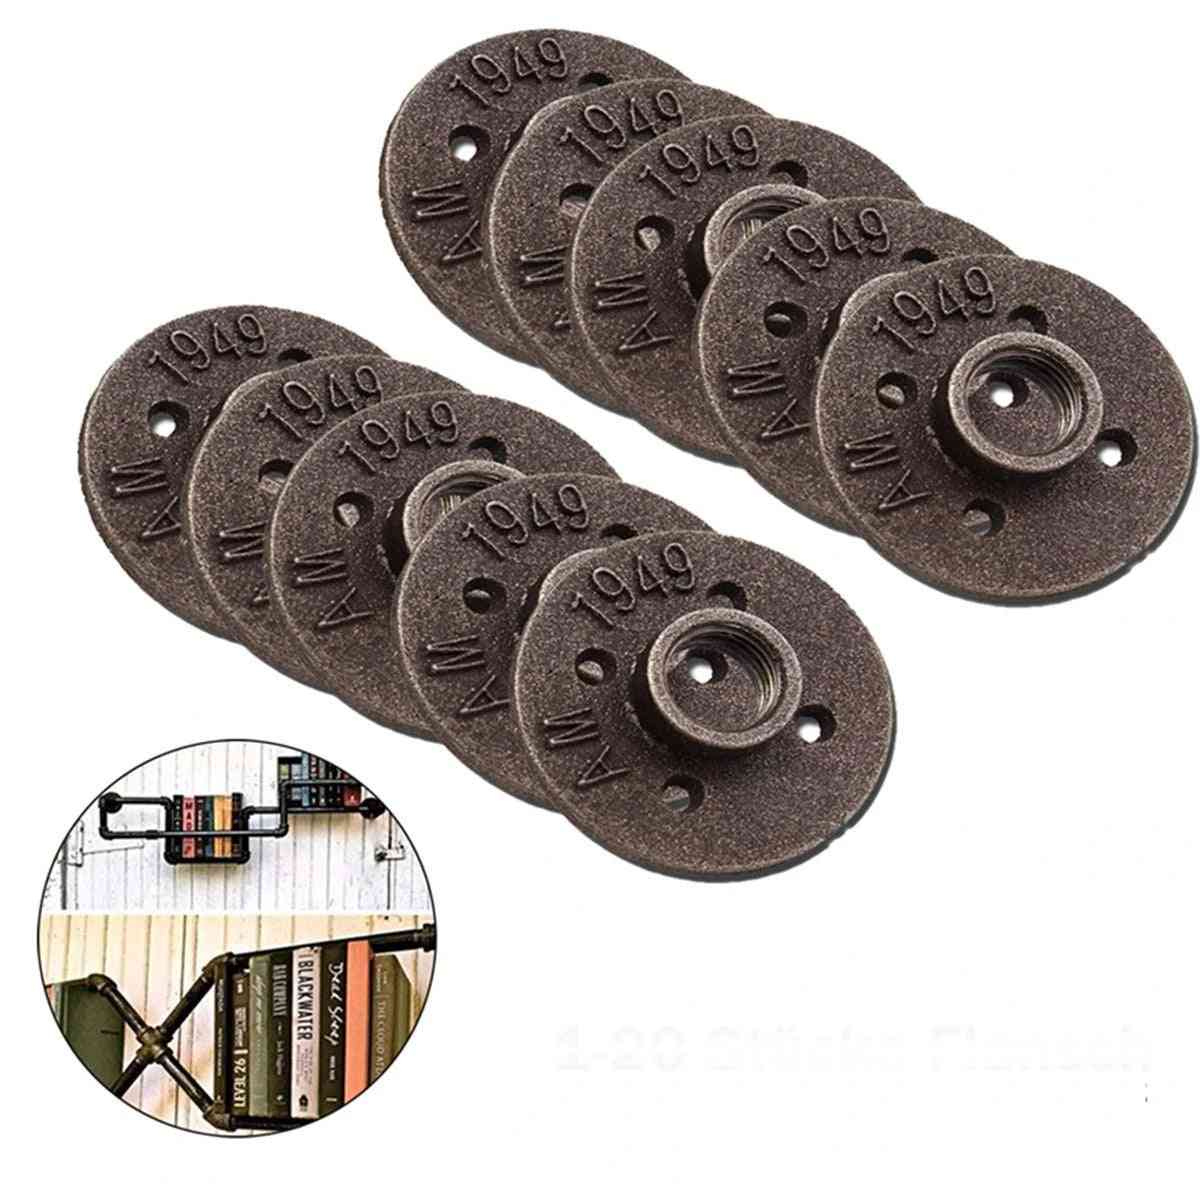 Flanges Iron Pipe Fittings Plumbing Wall Mount - Antique Piece Hardware Tool Cast Decorative